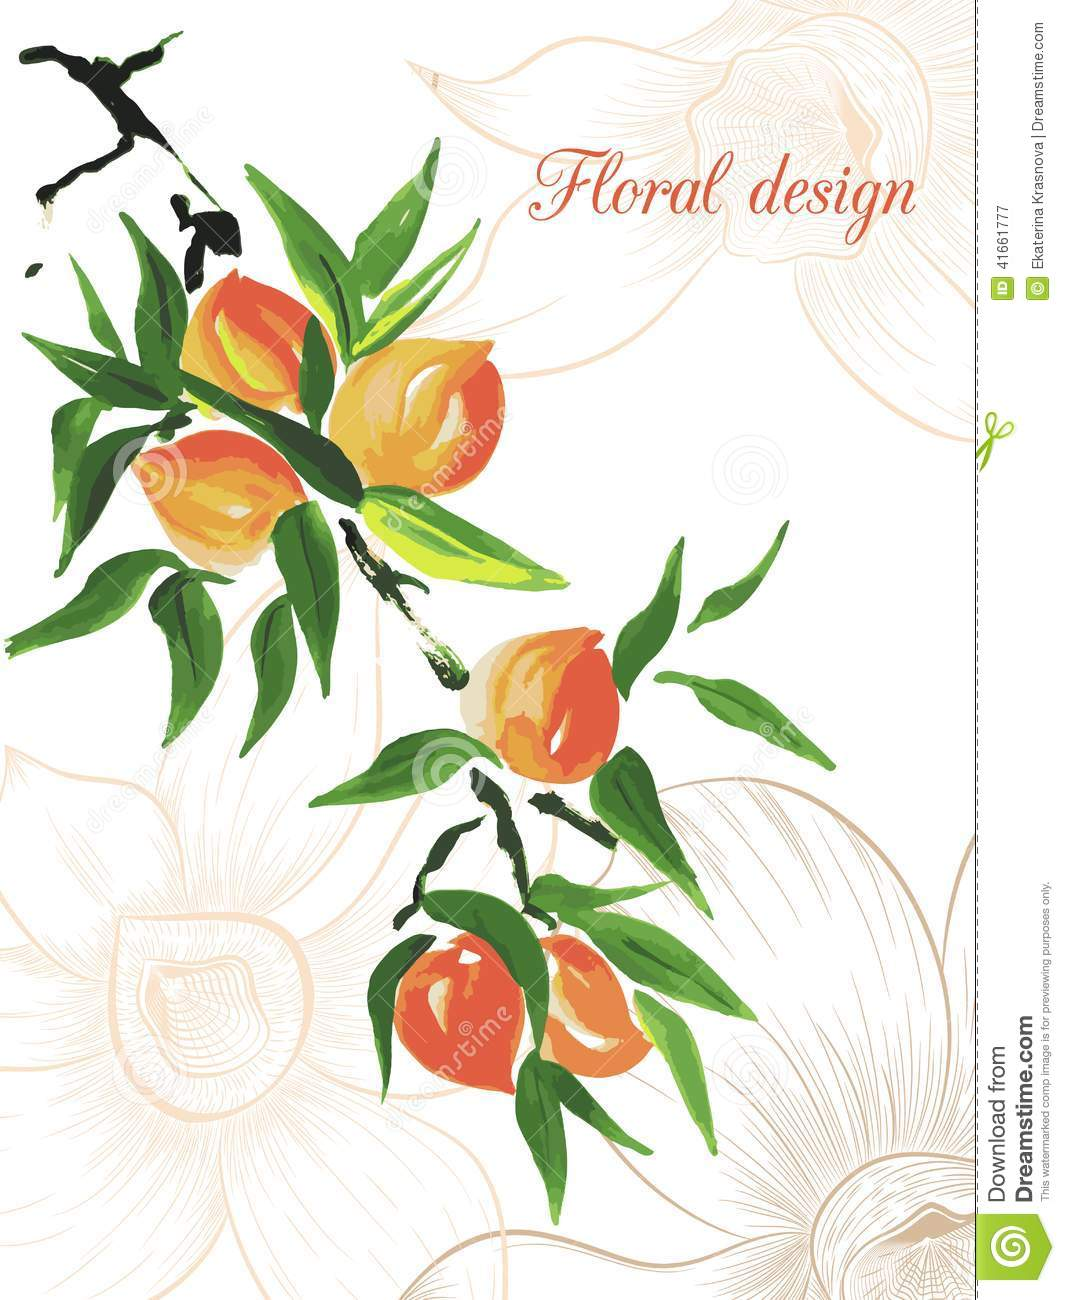 Rules how can i make a postcard template tex latex flag for Peach tree designs